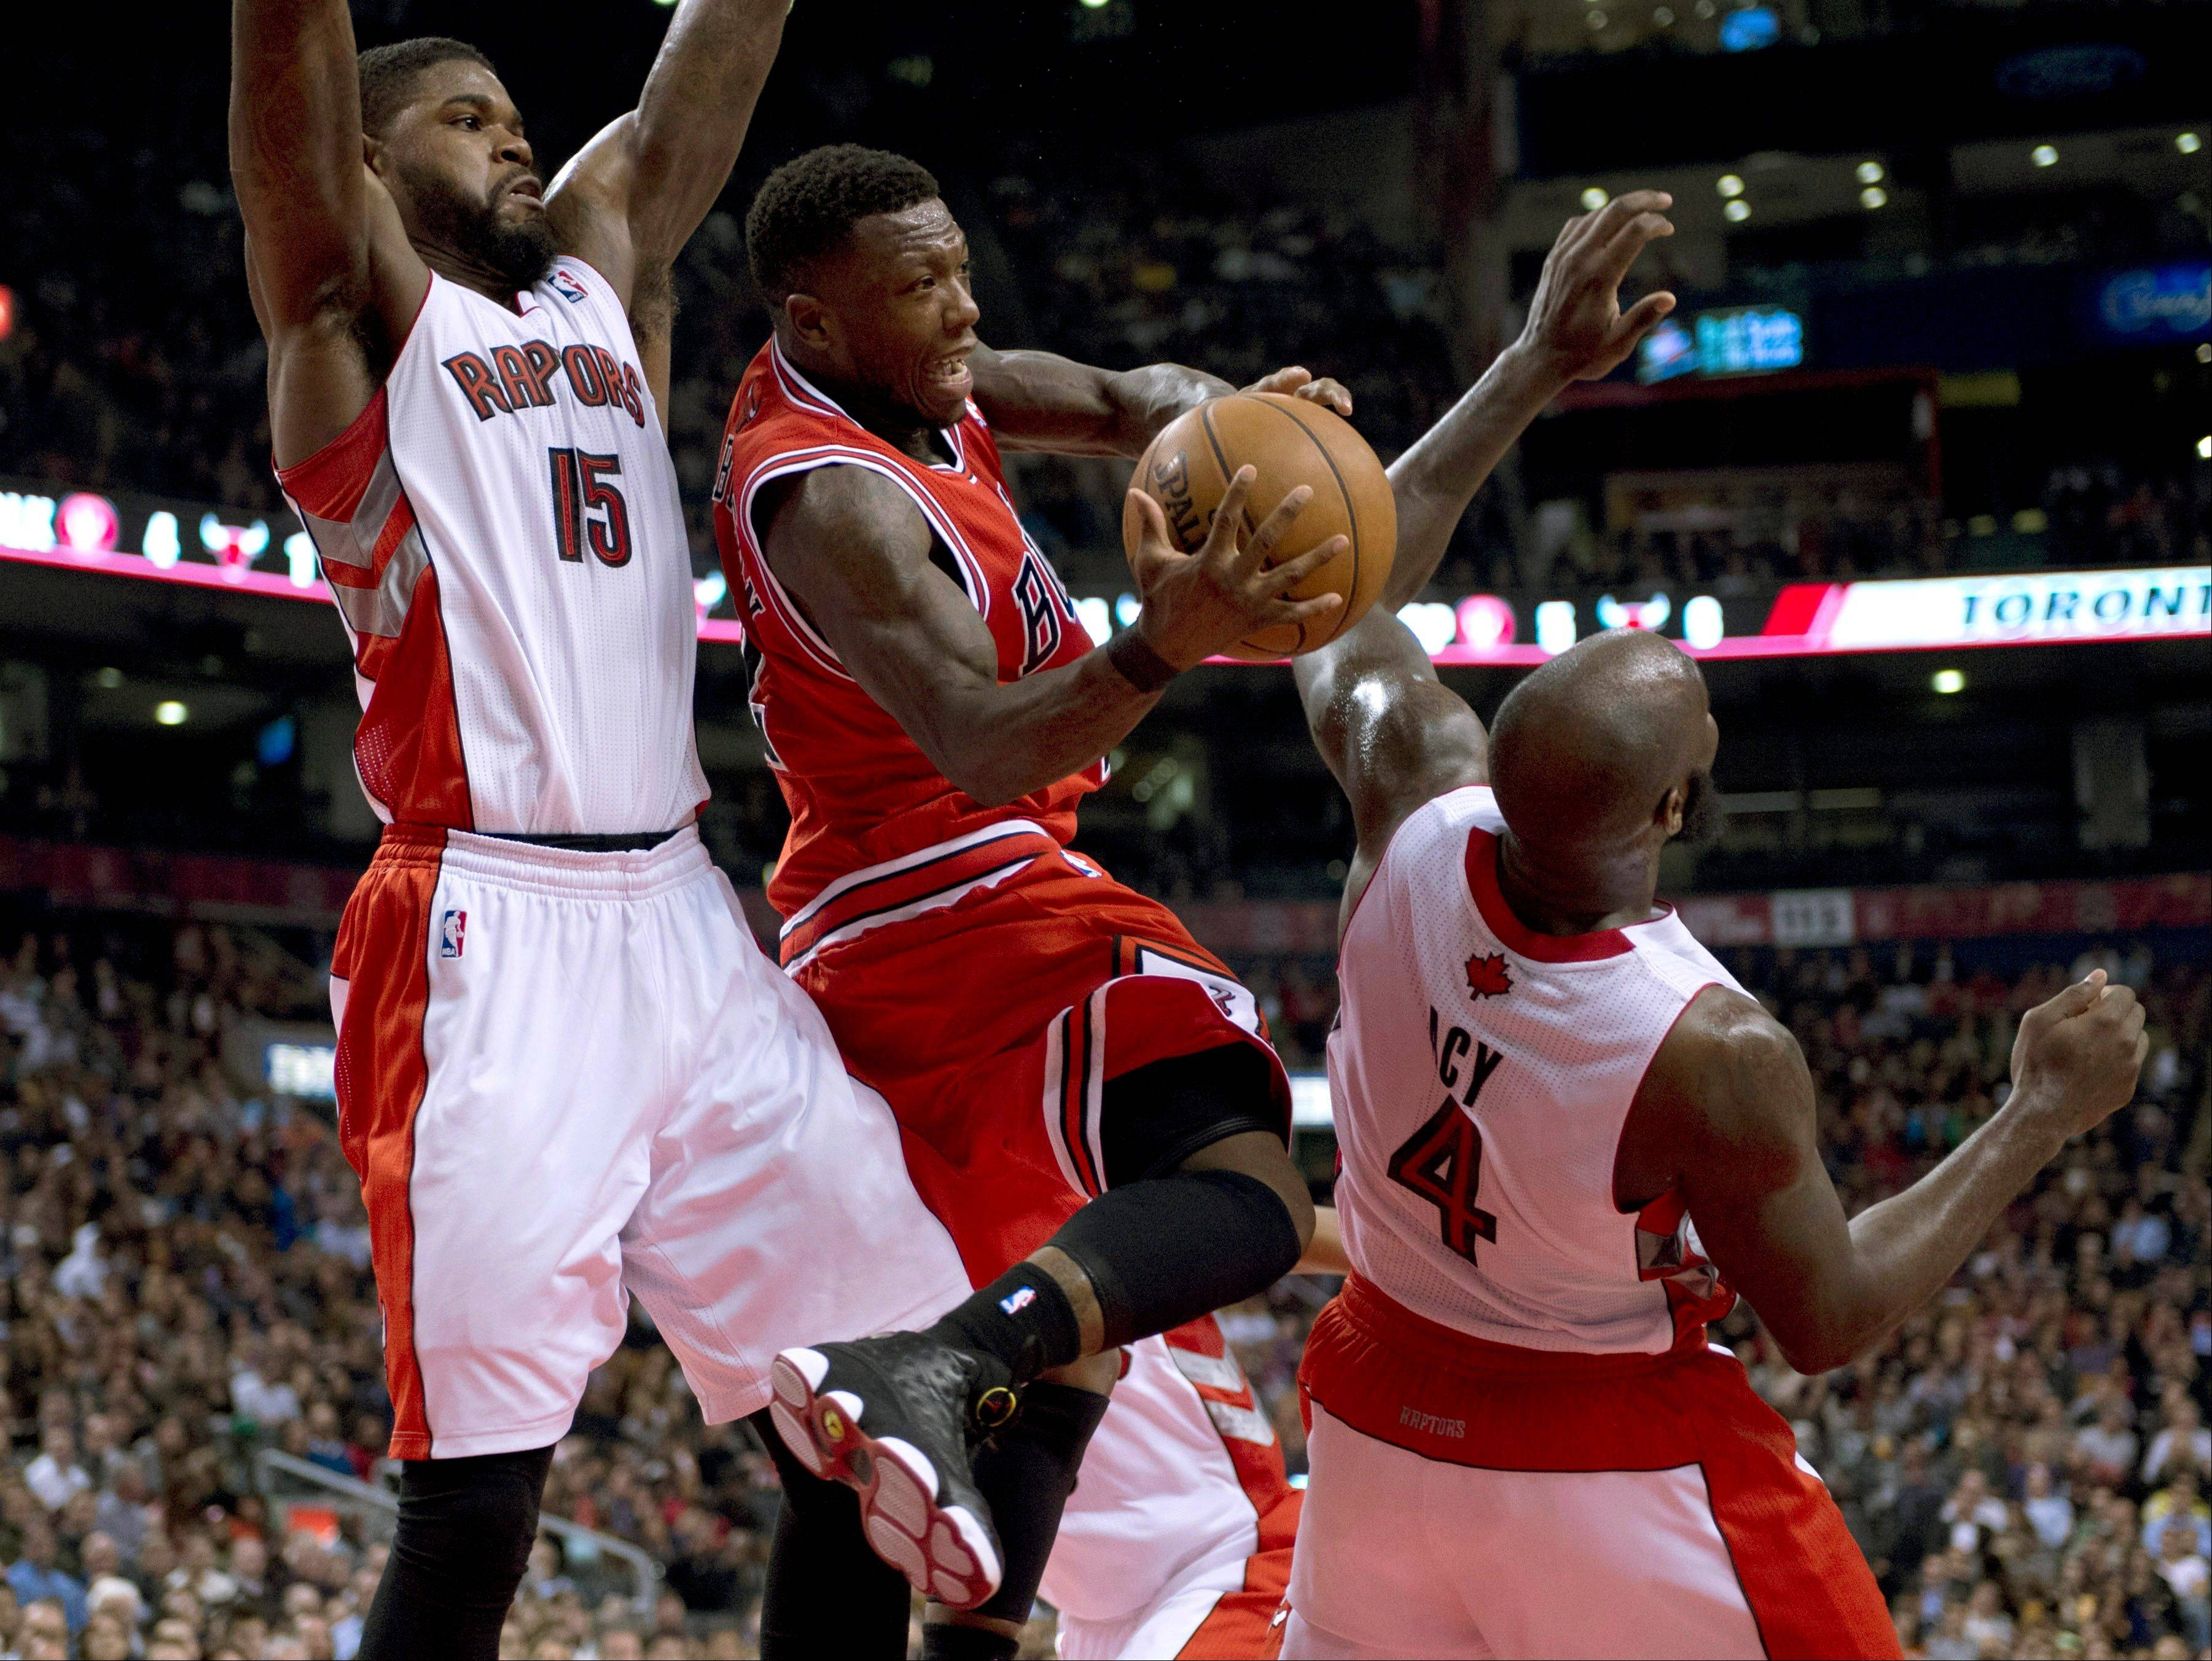 Chicago Bulls guard Nate Robinson, center, passes off the ball as he runs into Toronto Raptors forwards Amir Johnson, left, and Quincy Acy last Friday in Toronto.